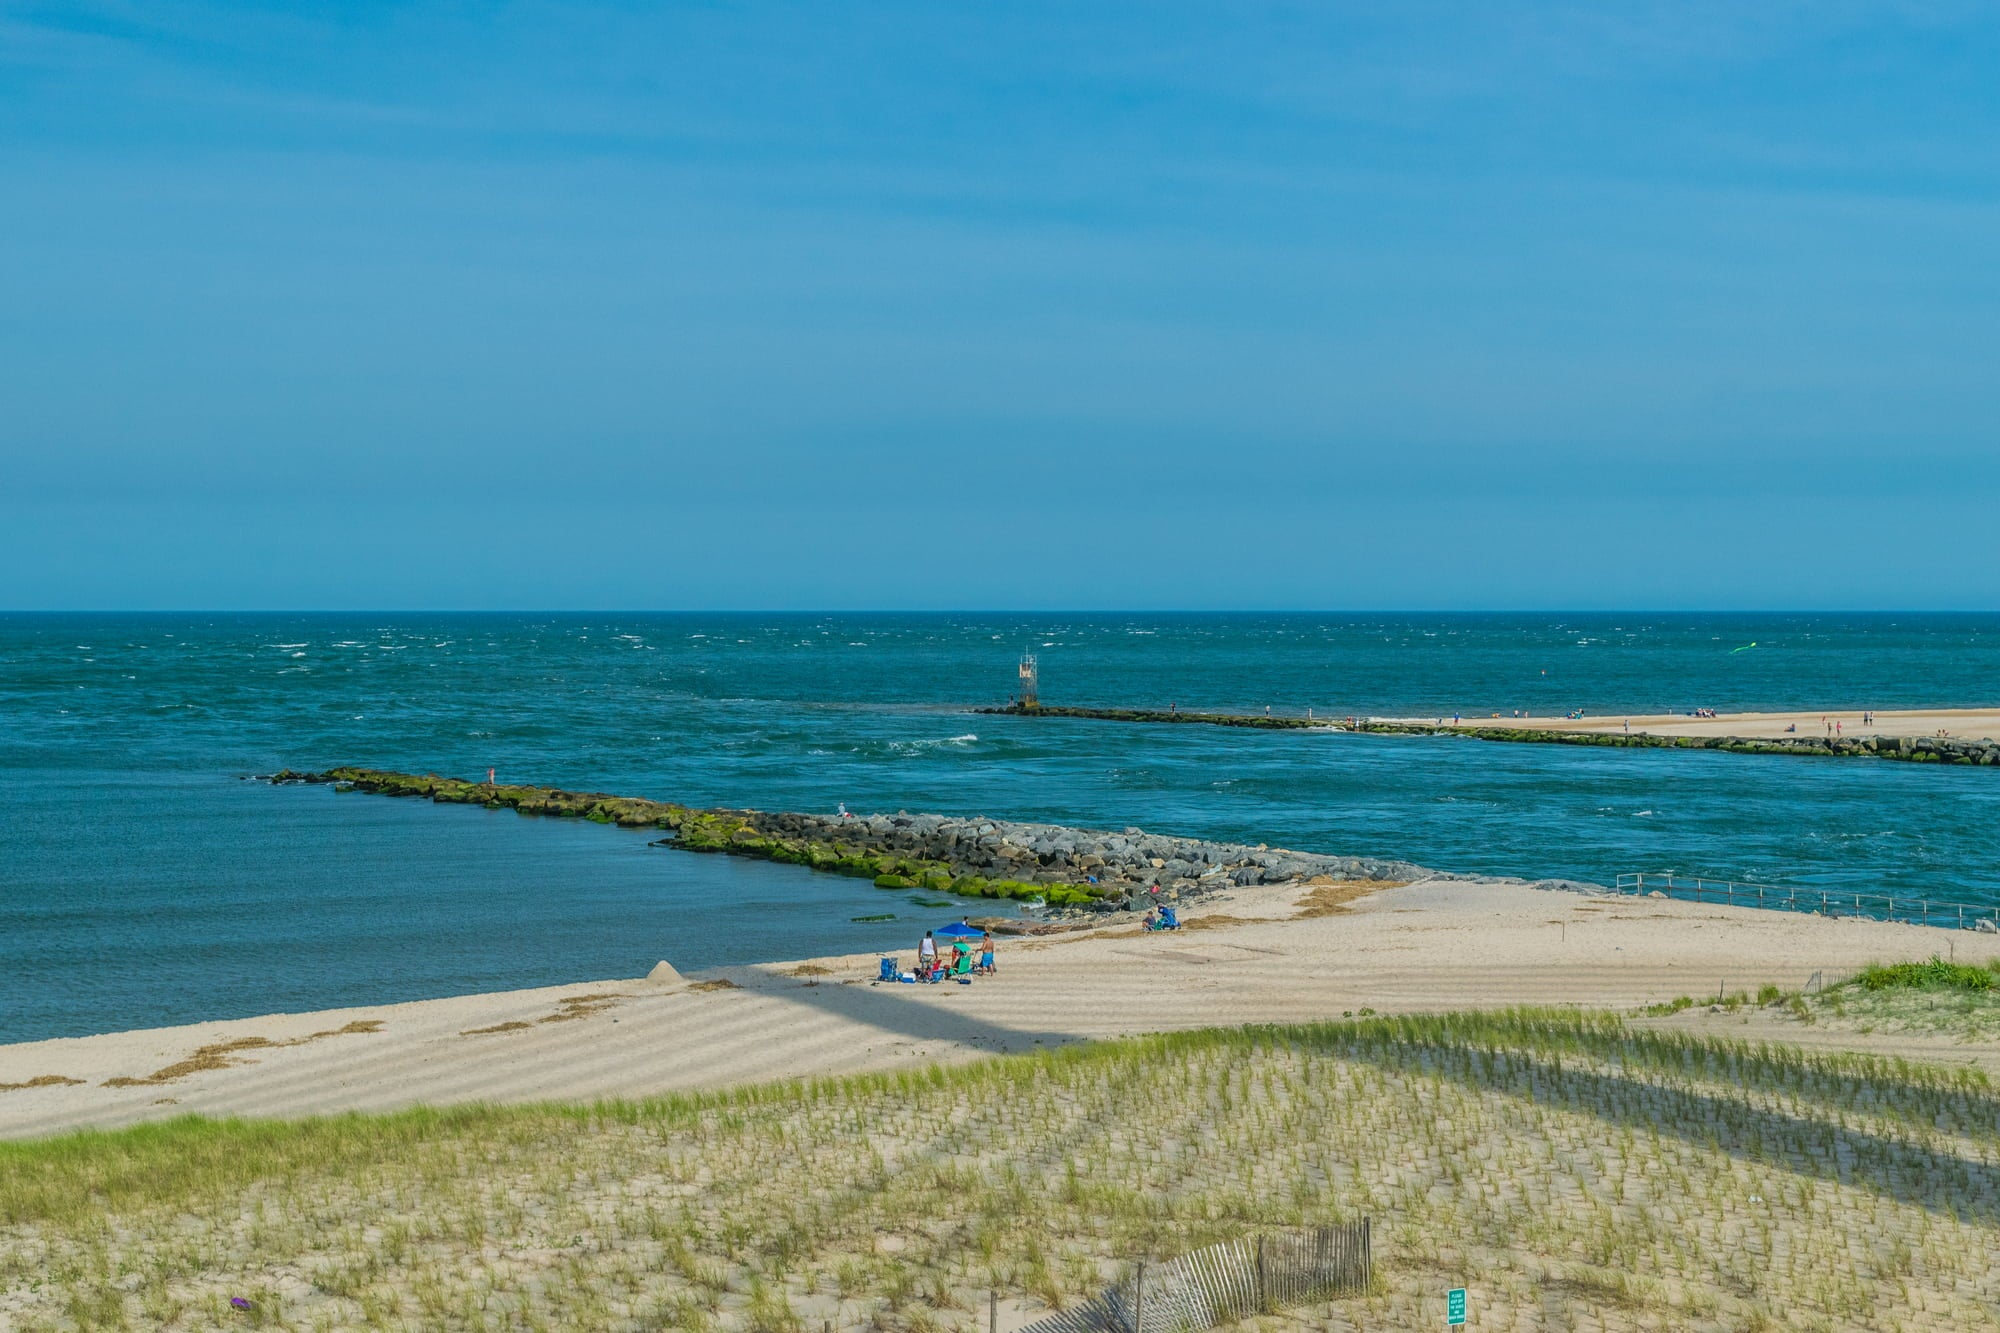 the shore of delaware beach state park in delaware